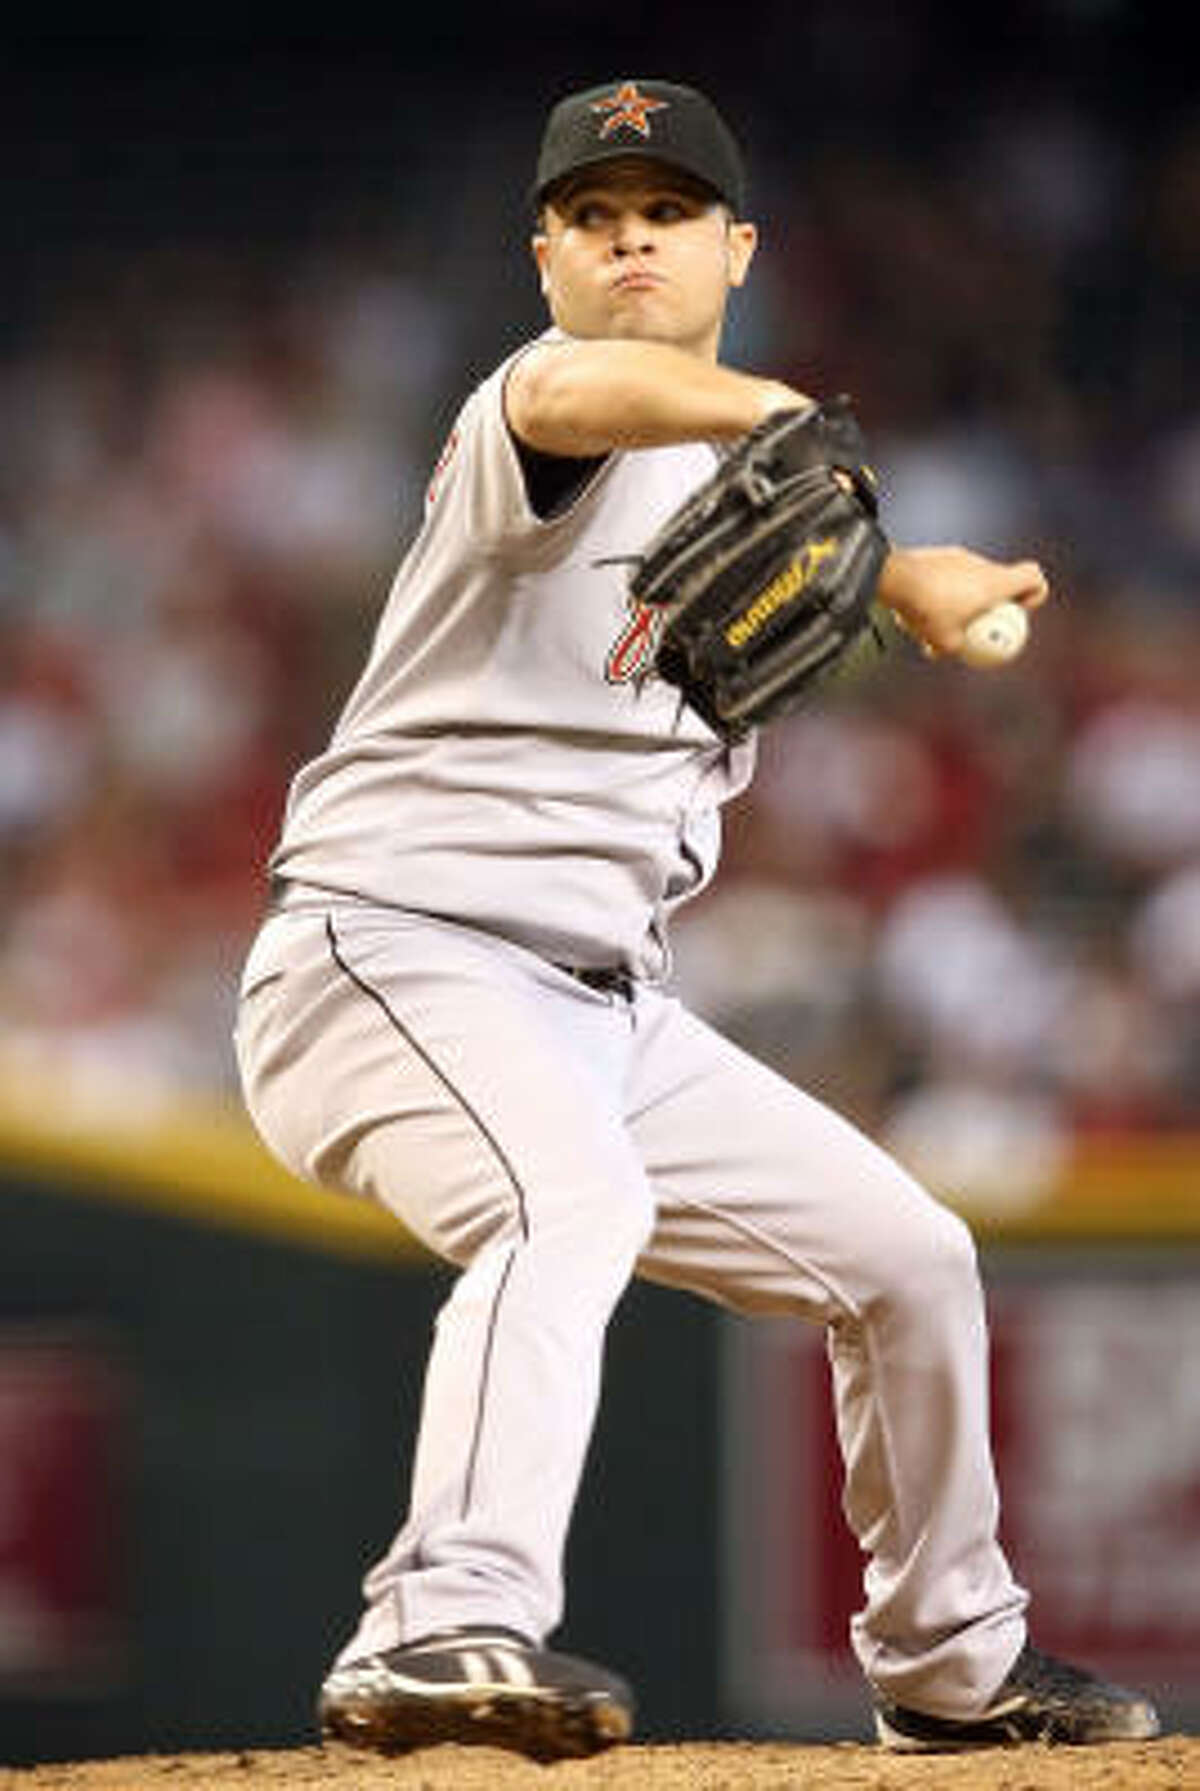 Aug. 30: Diamondbacks 4, Astros 3 Astros starting pitcher Wandy Rodriguez gave up four runs and allowed seven hits in six innings of work.